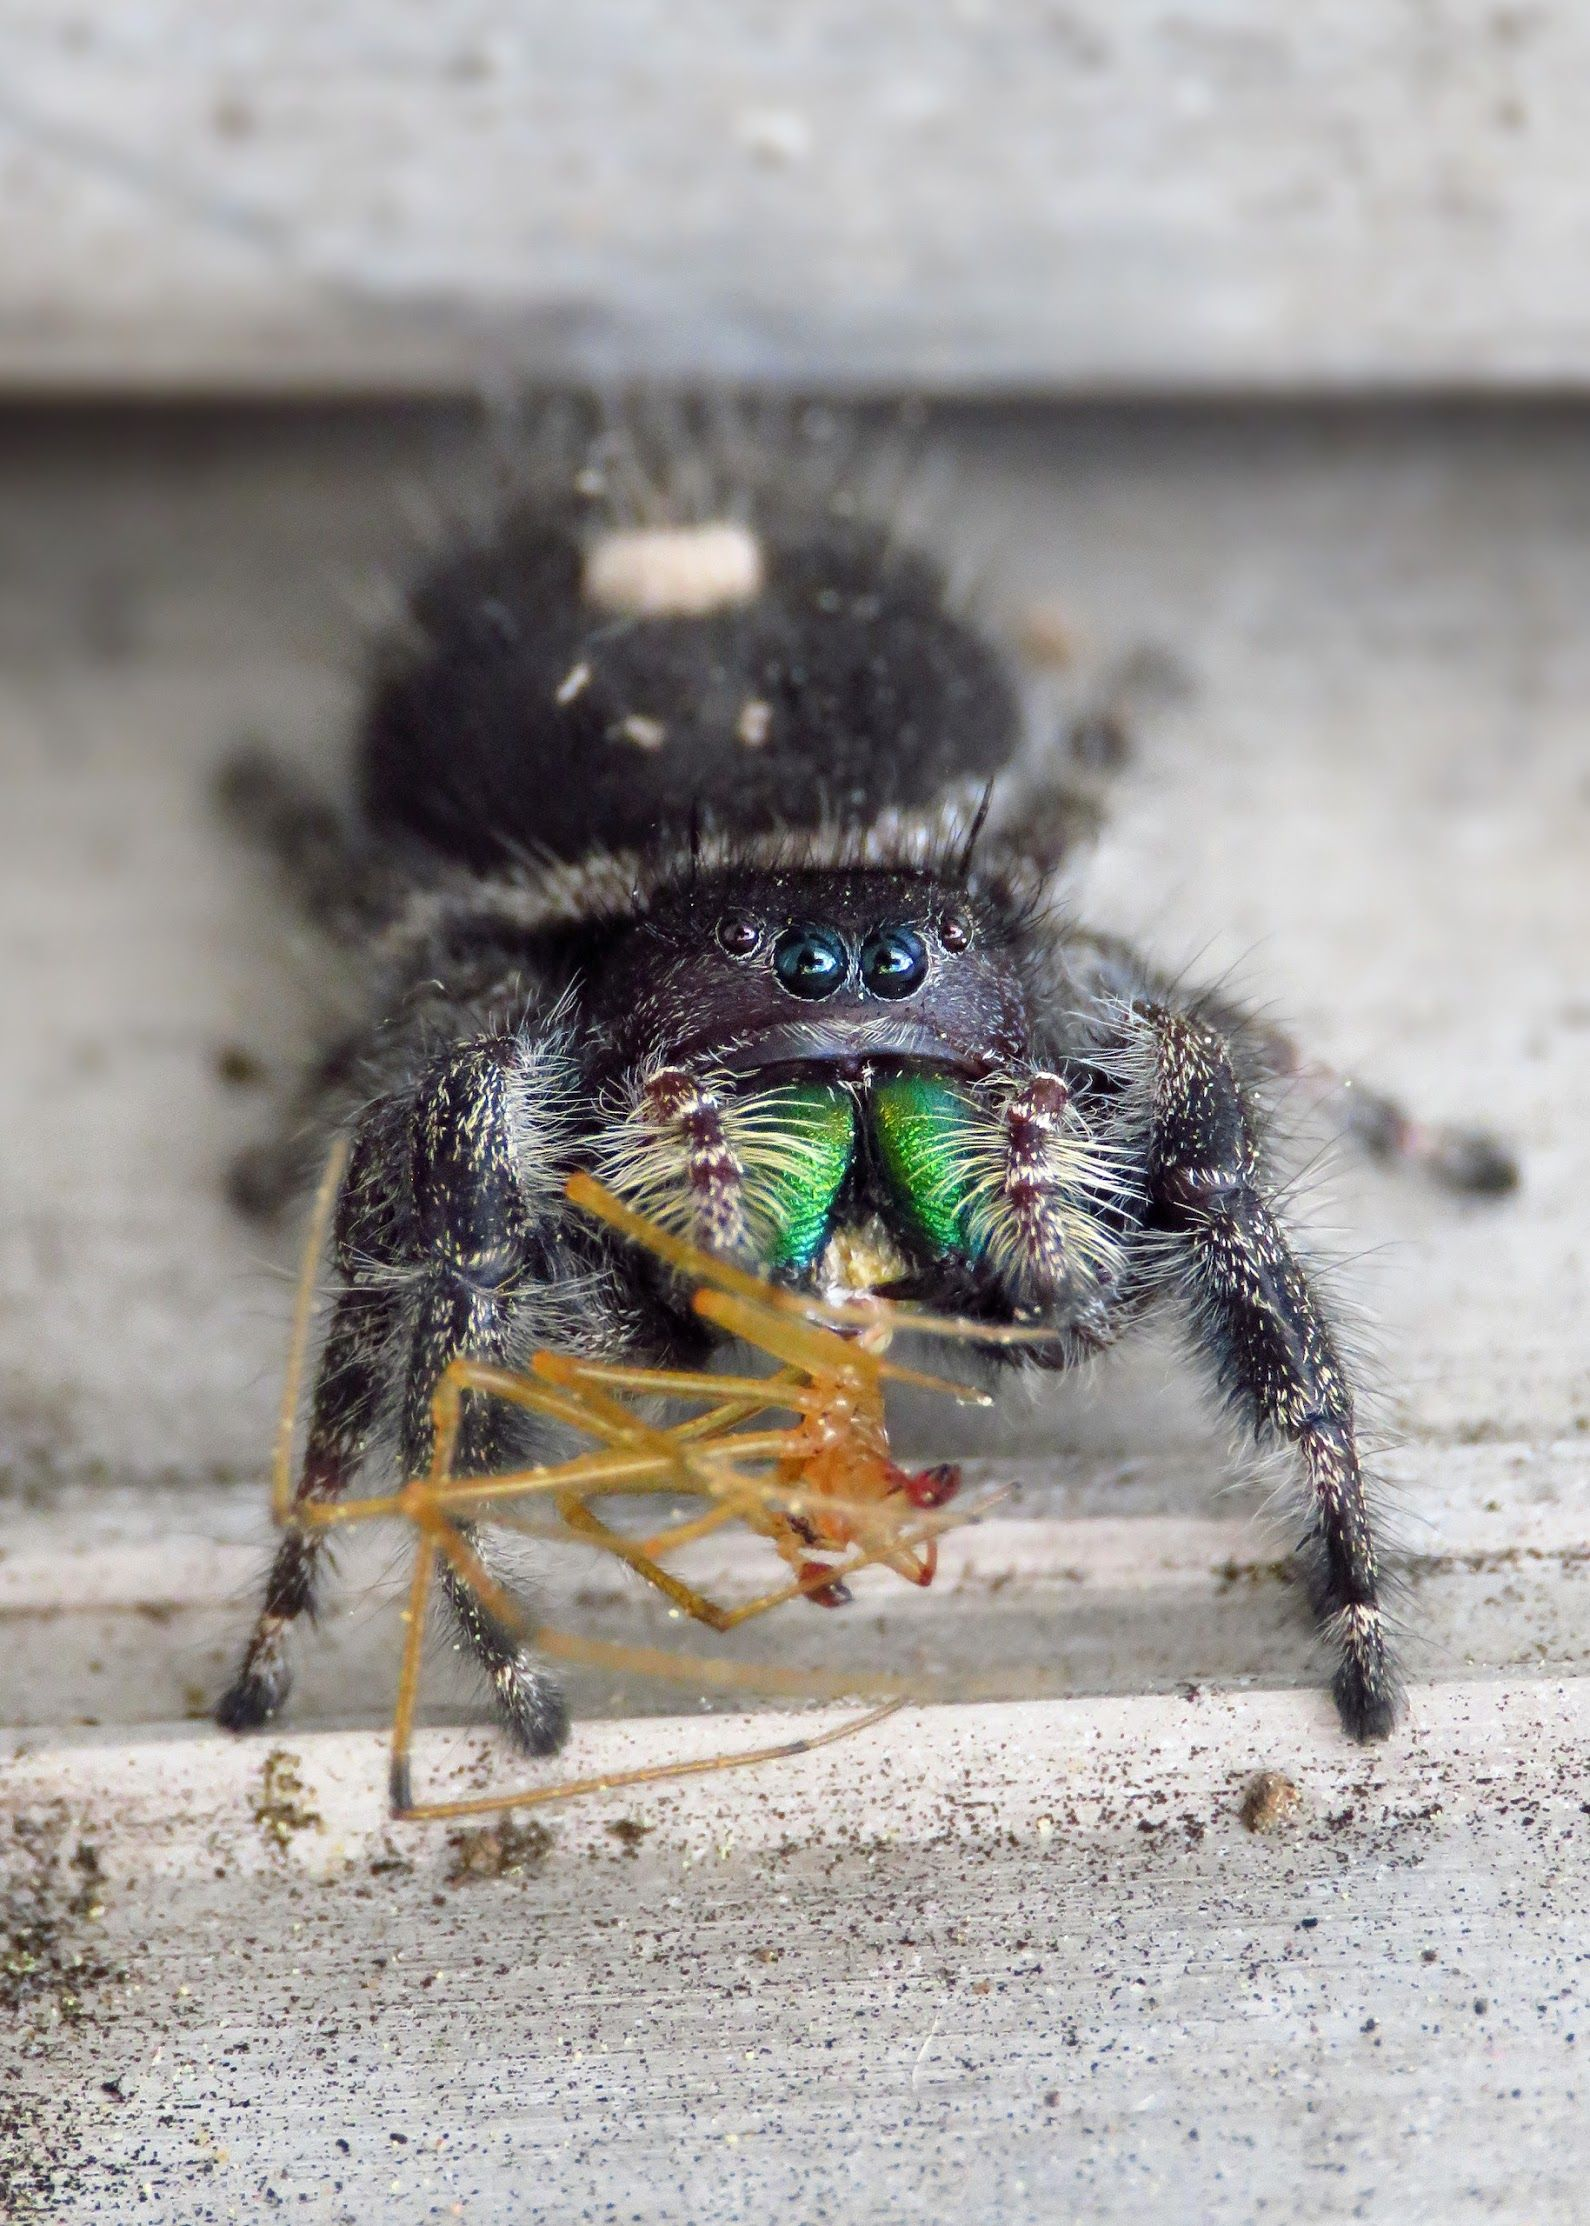 Bold Jumping Spider Phidippus Audax This Fierce Little Guy Was